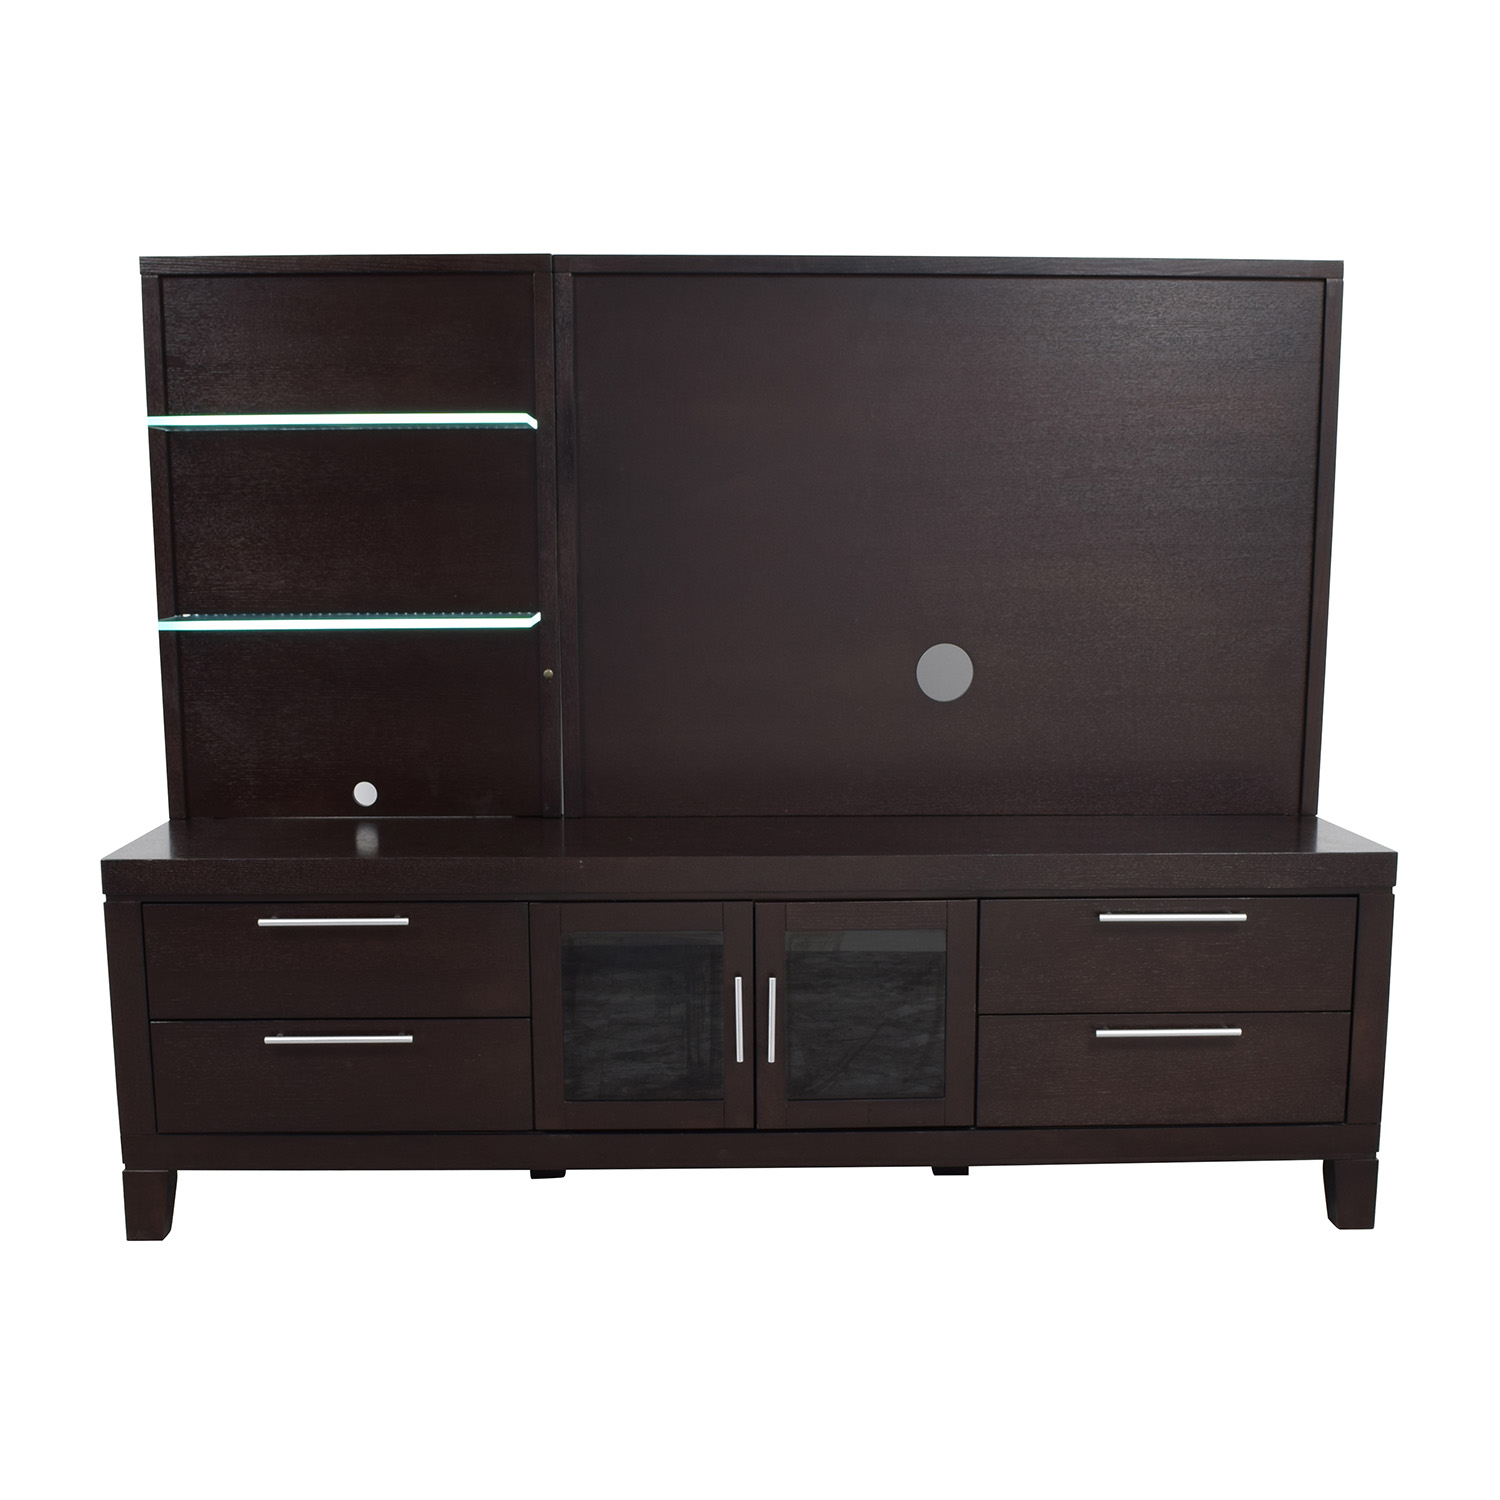 Raymour and Flanigan Raymour and Flanigan Entertainment Center with Open Glass Shelves Storage